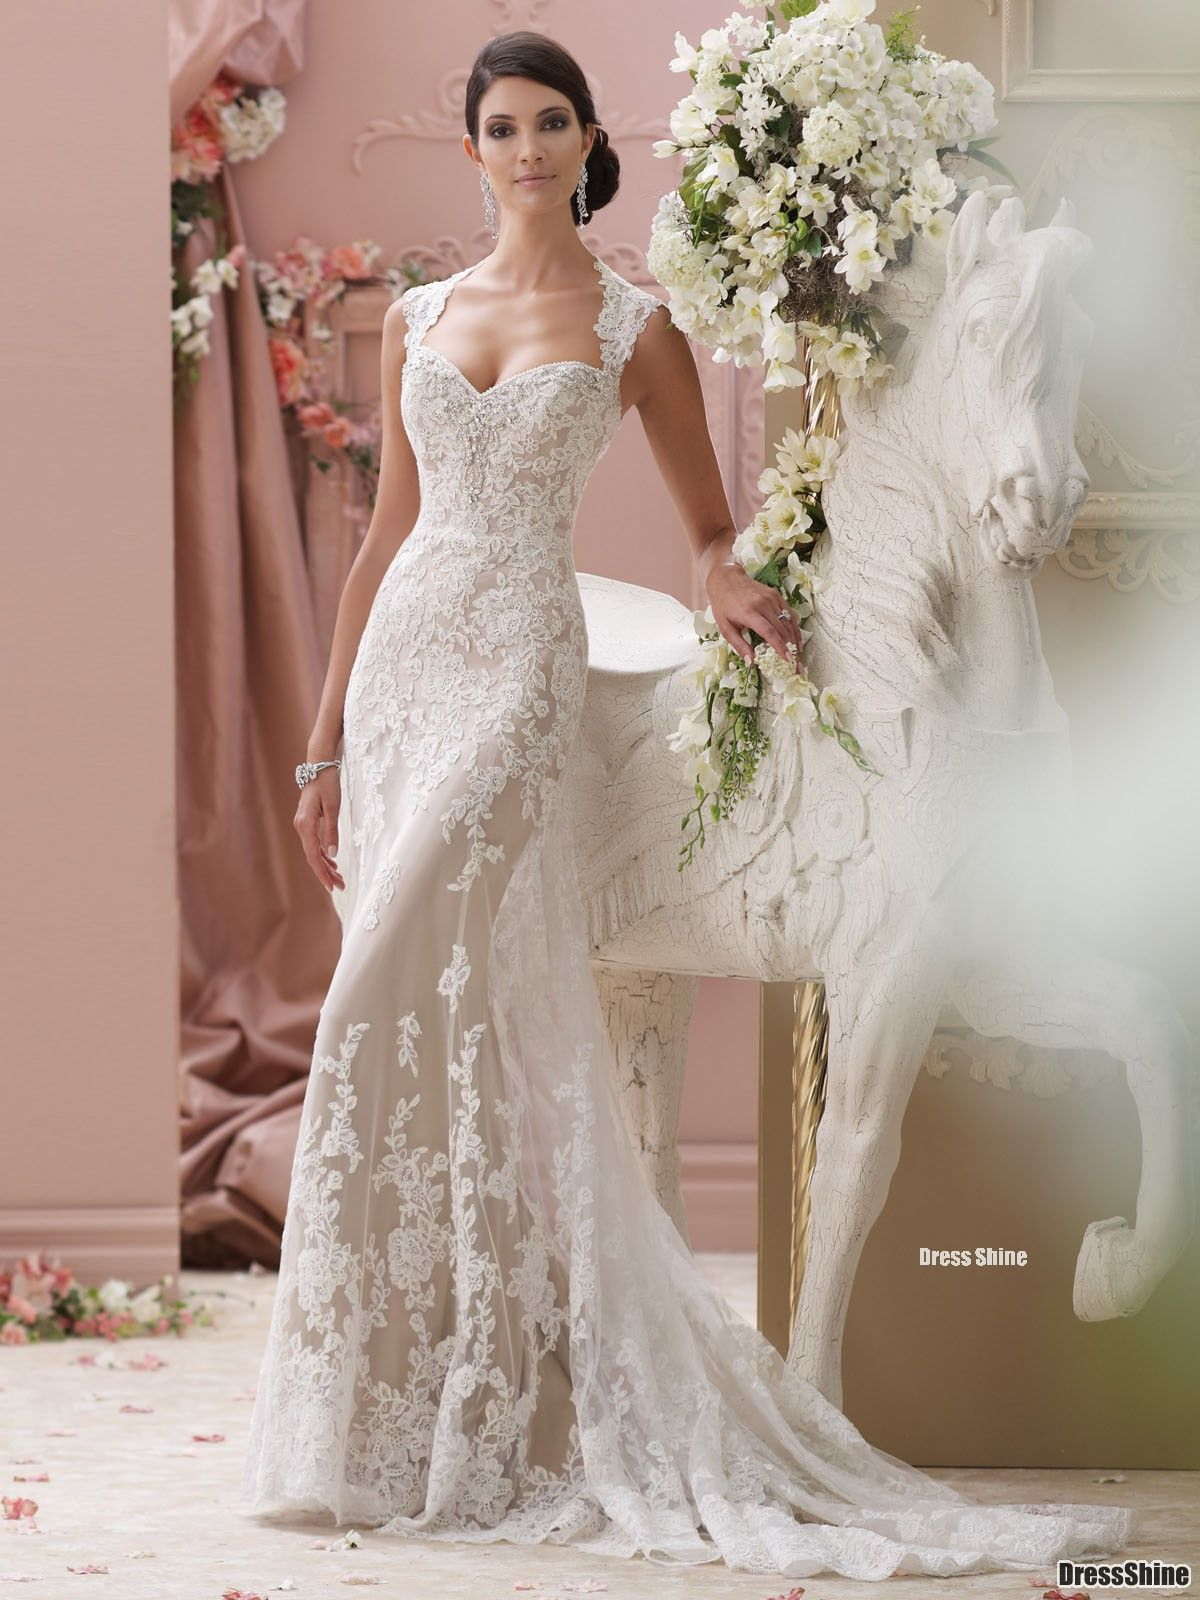 Lace cap sleeve a line wedding dress  I like this  lace appliqué and tulle over soft satin slim Aline